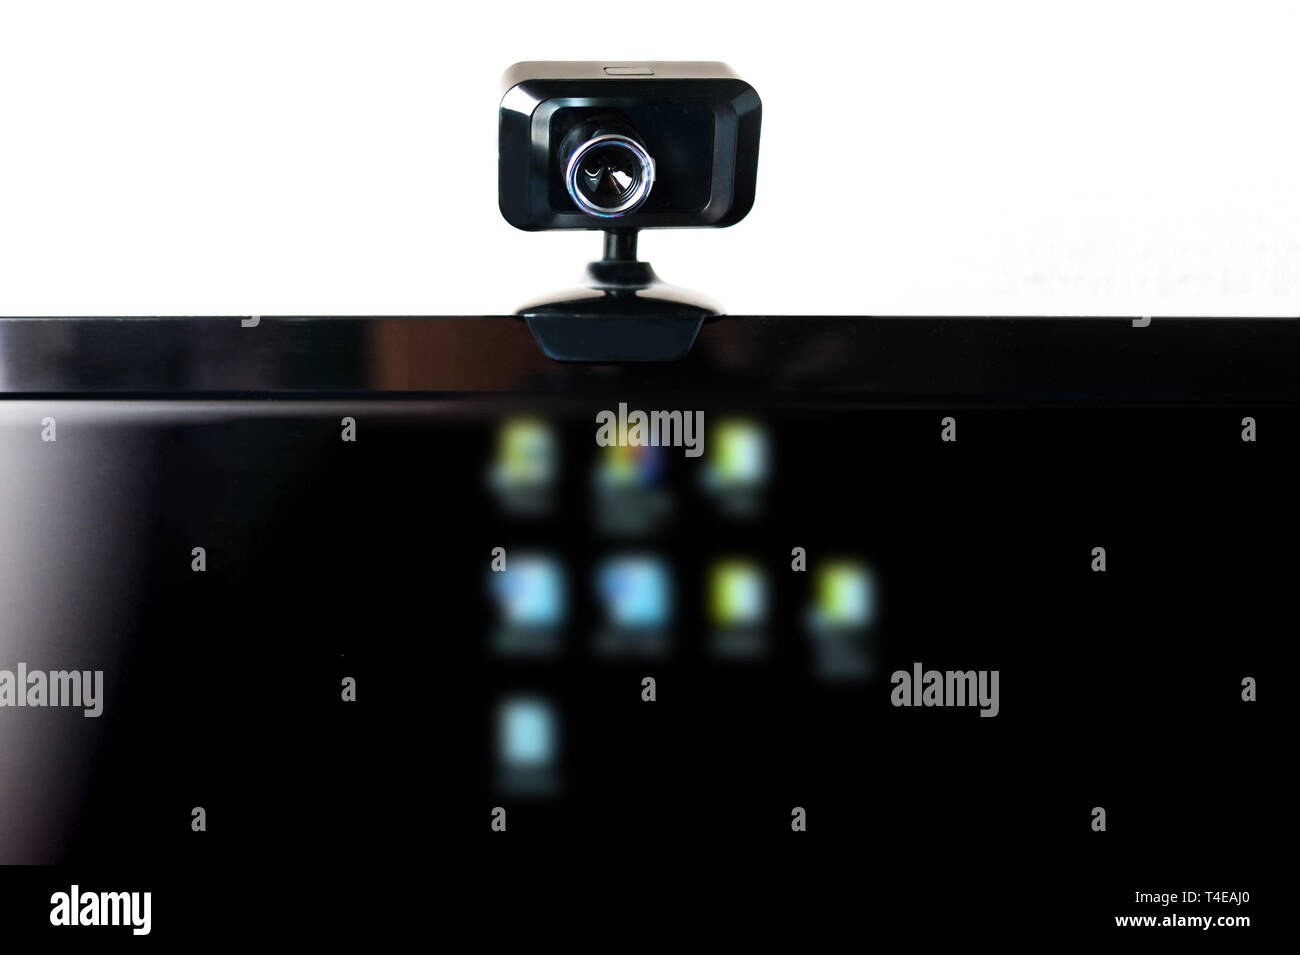 USB Webcam, Web Camera, Mounted on Computer Monitor with